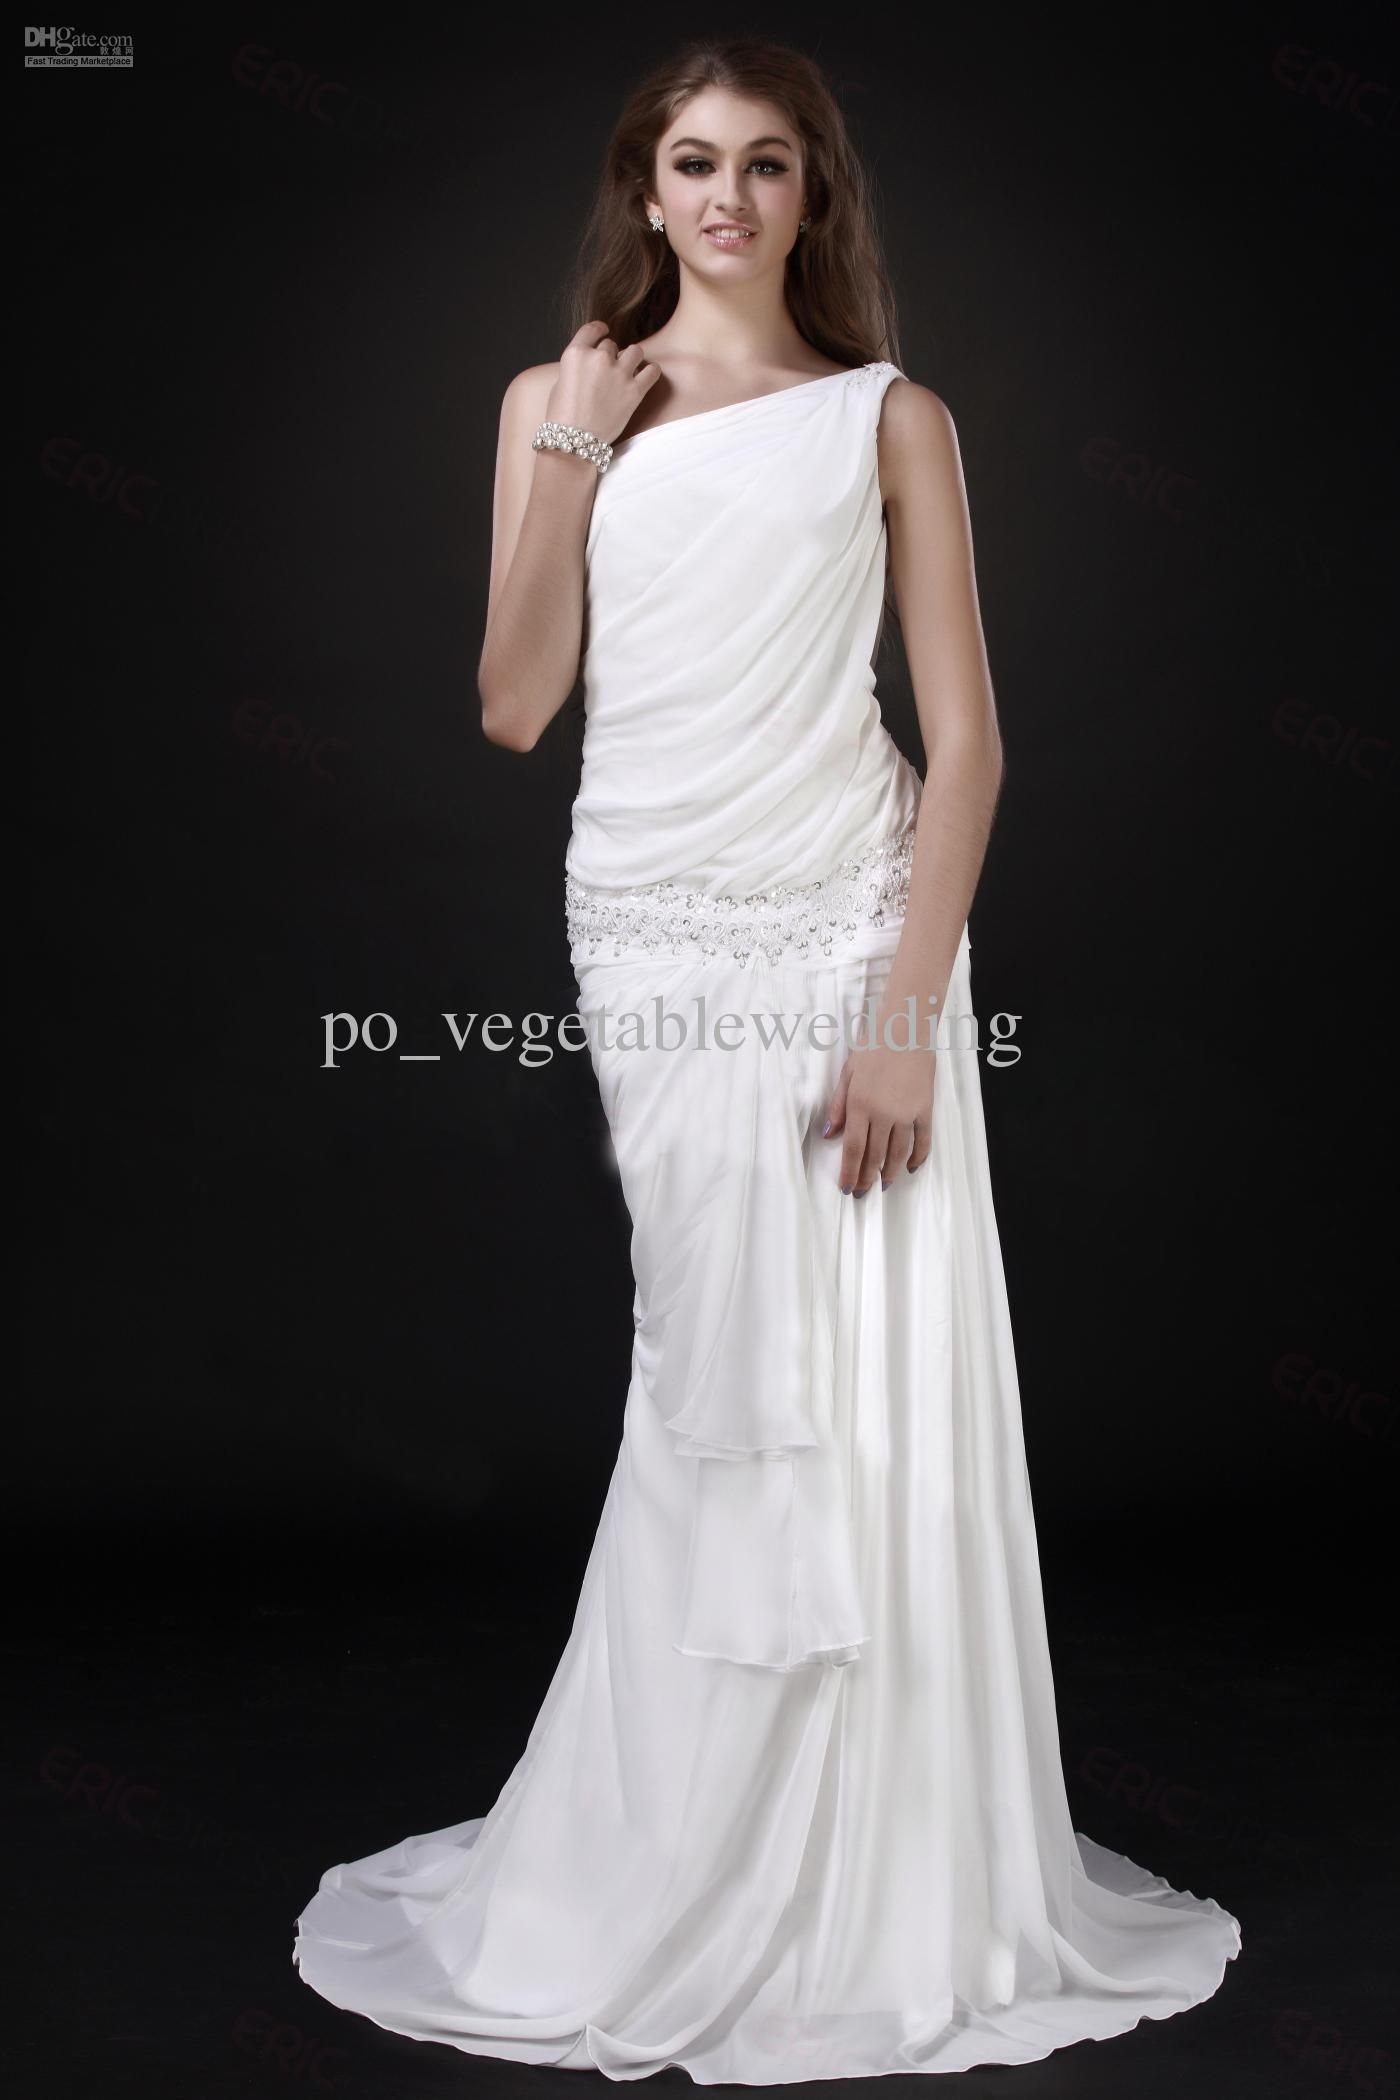 Vintage Beach Wedding Dress Greek Goddess Ruffle One Shoulder Sequin A Line Elegant Chiffon SA NA00